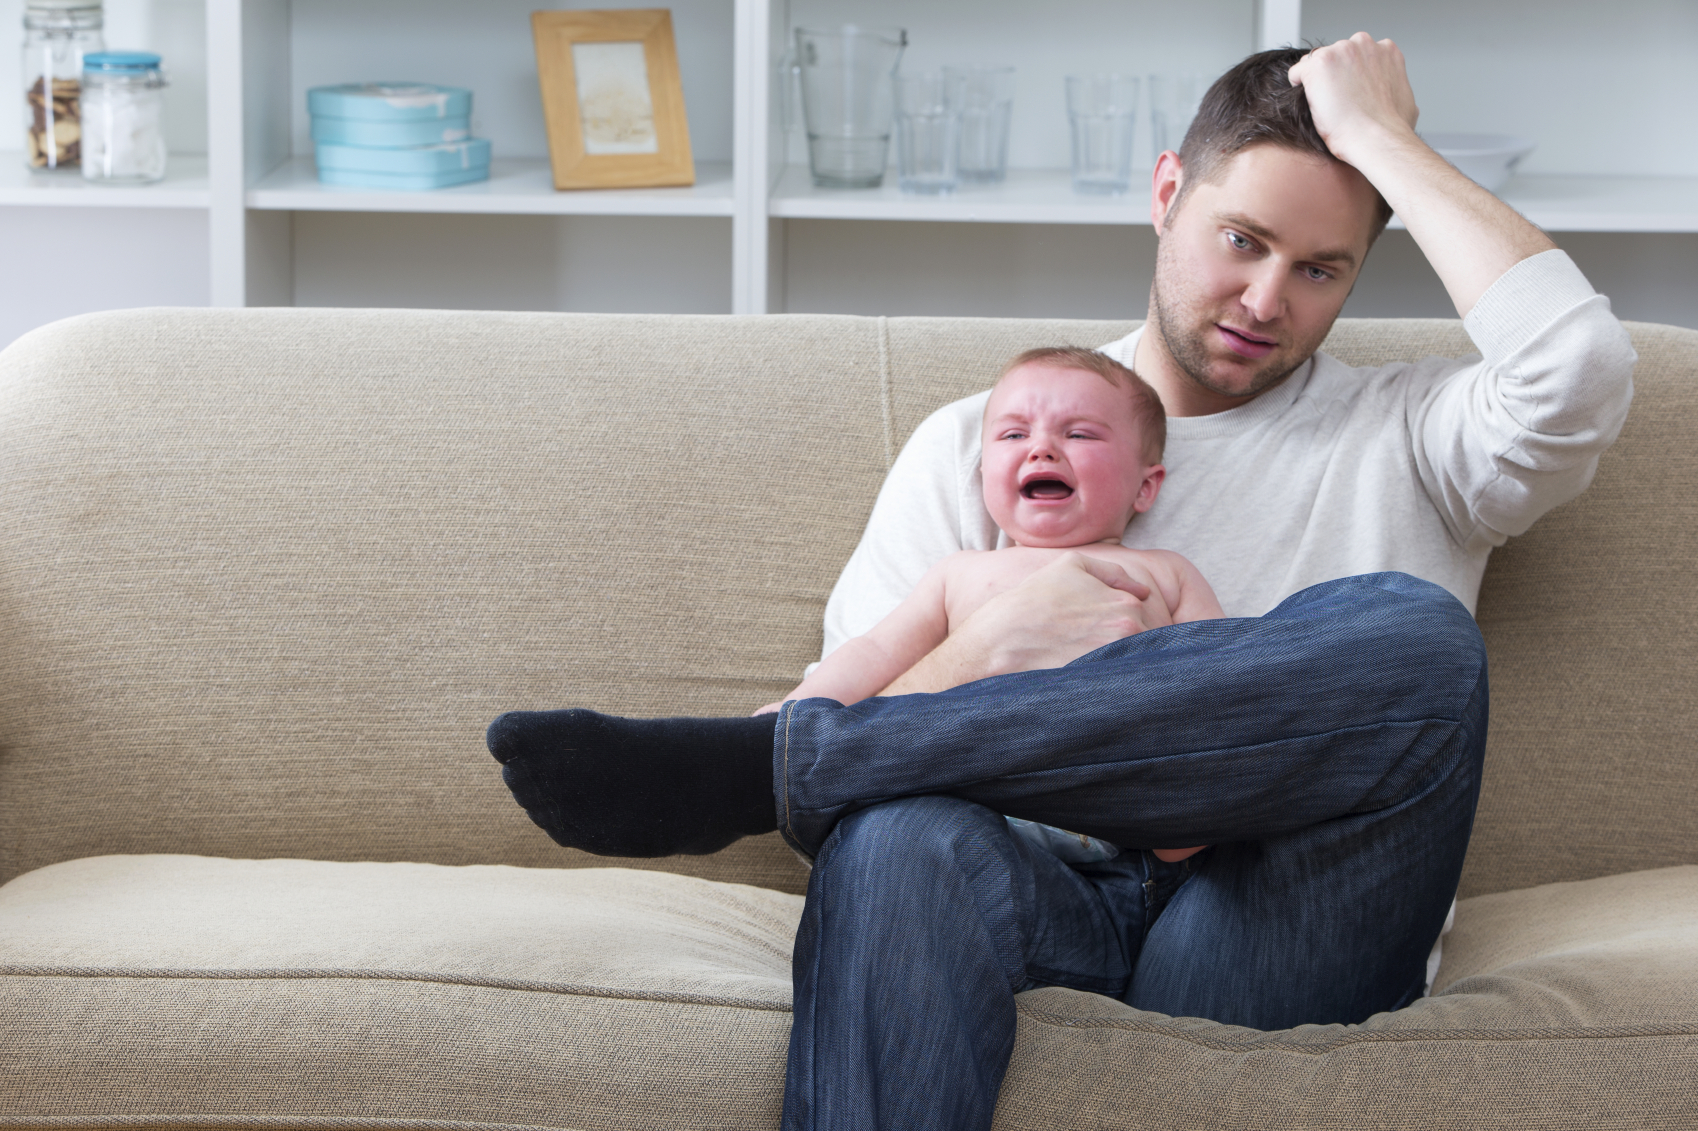 A man sitting on the couch with a crying baby. (stock image)